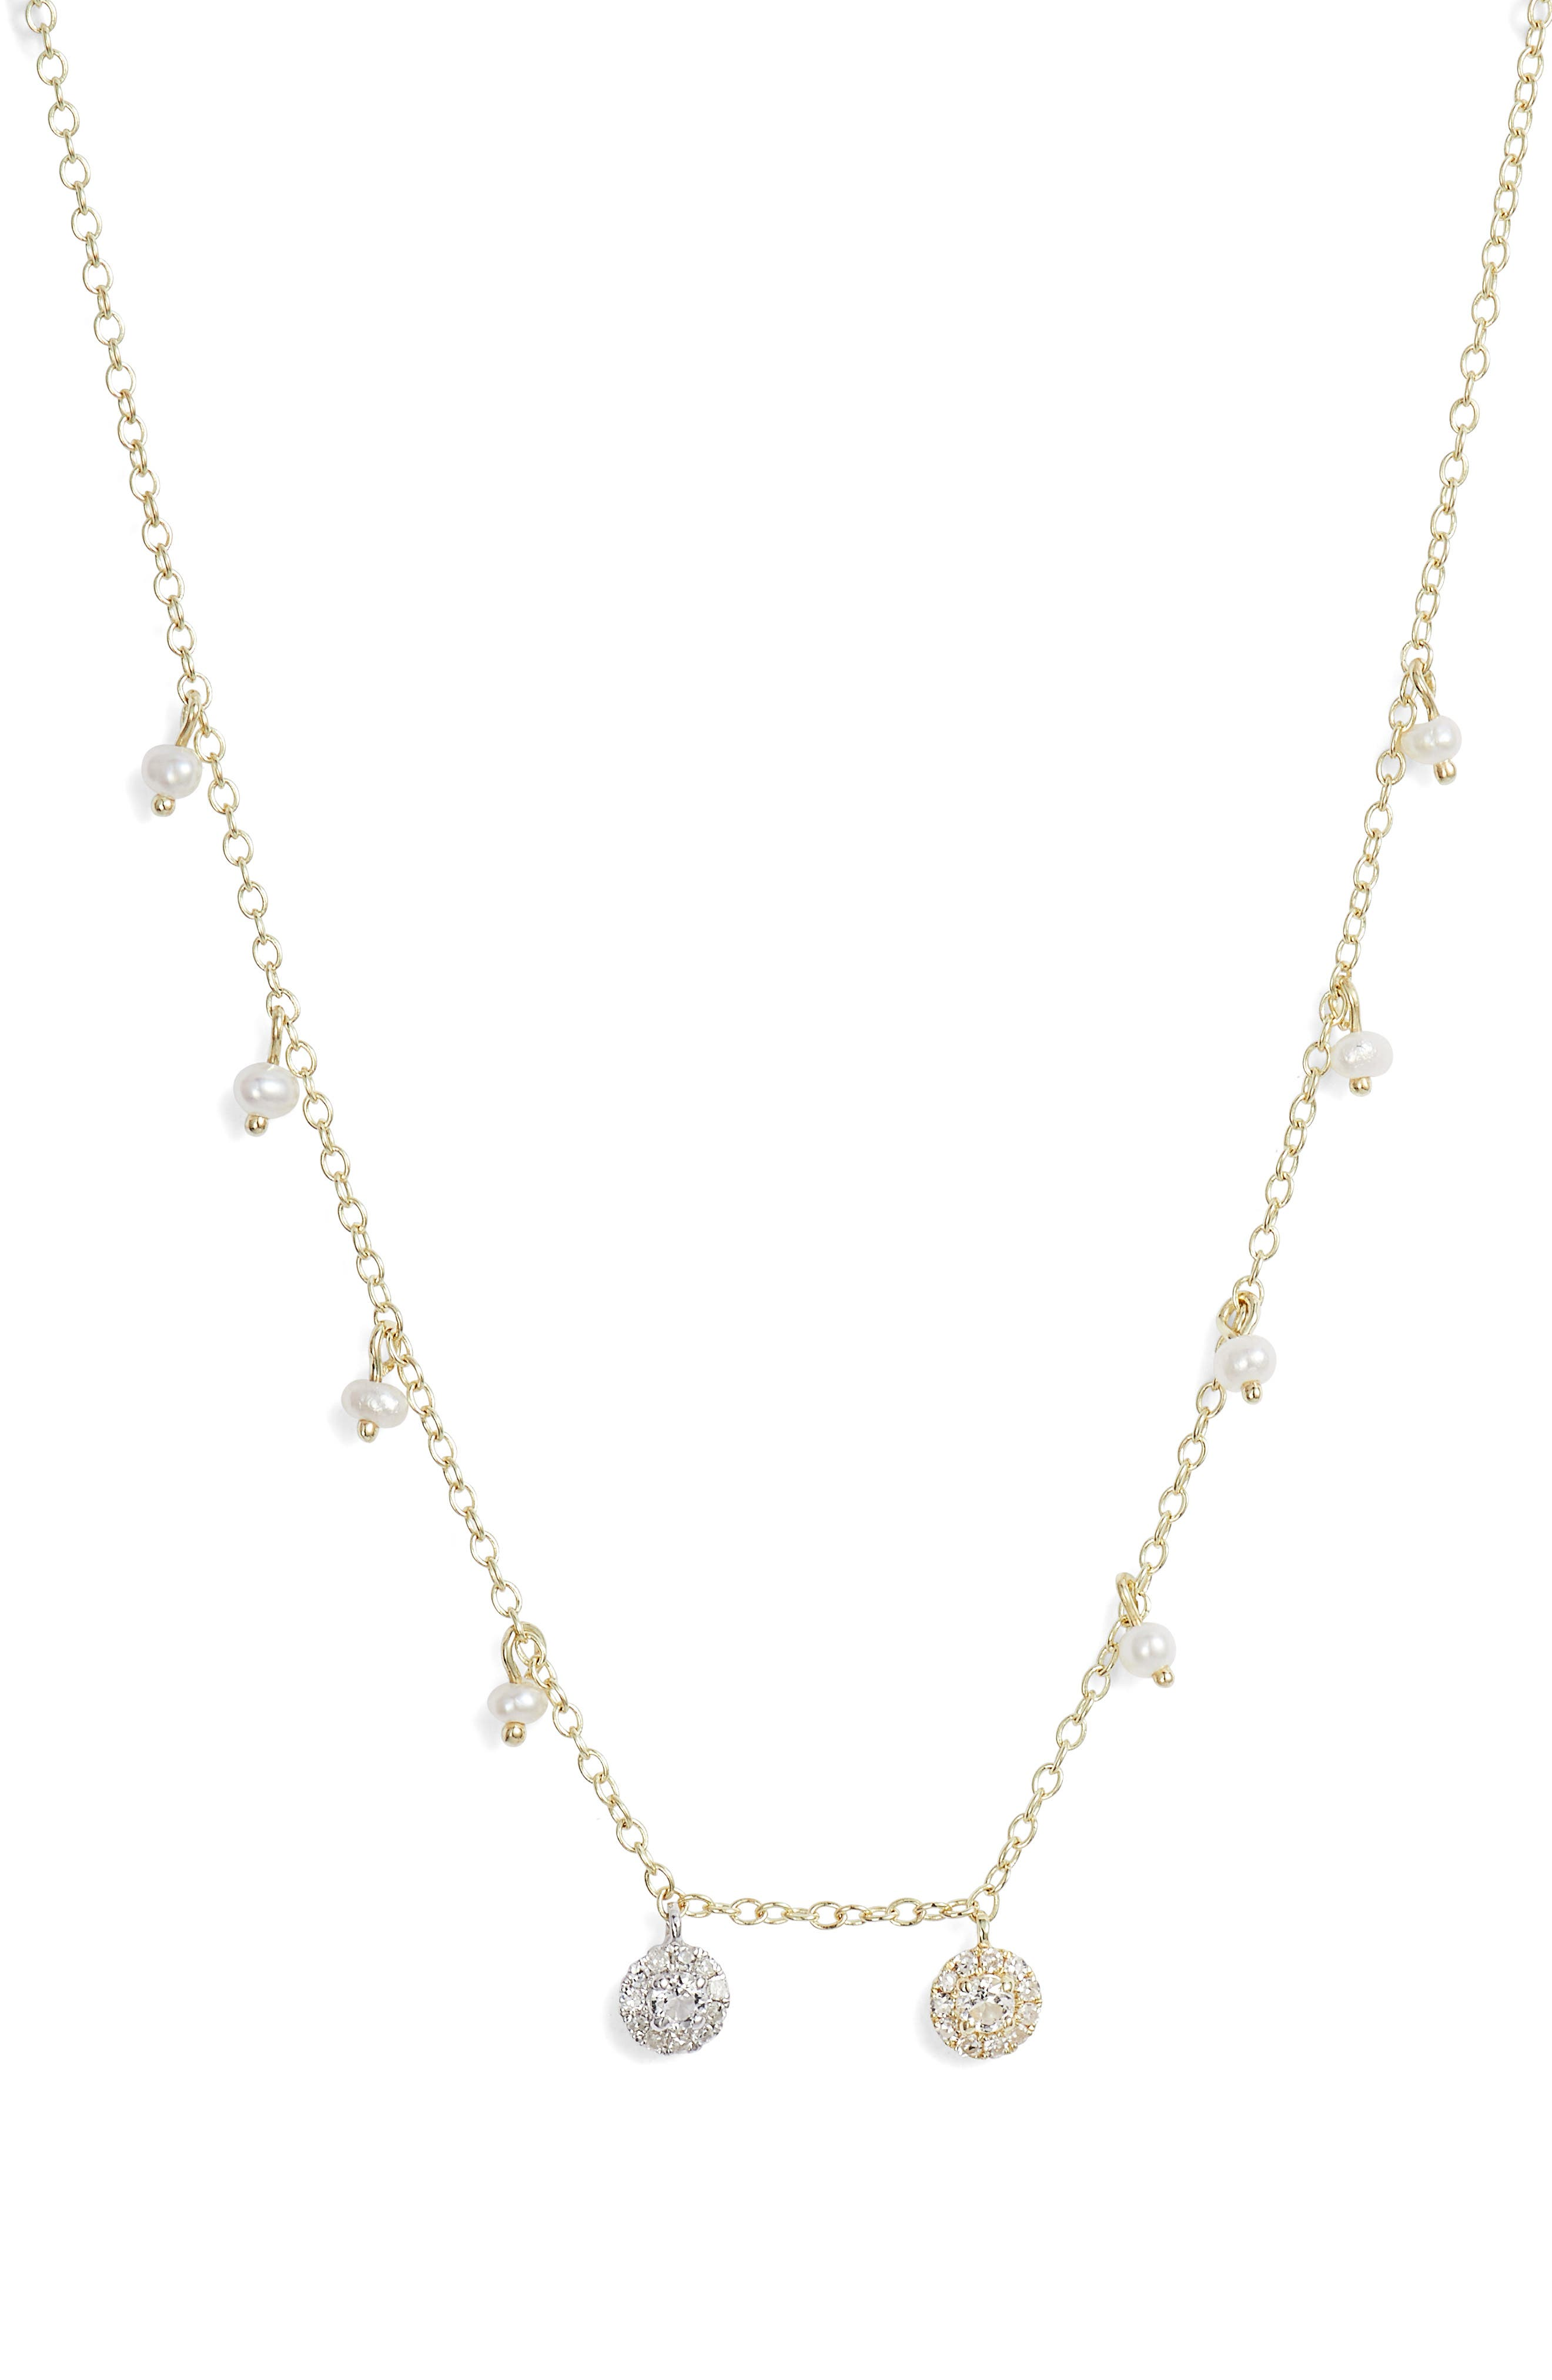 MEIRA T DOUBLE DIAMOND DISC CHARM & FRESHWATER PEARL NECKLACE